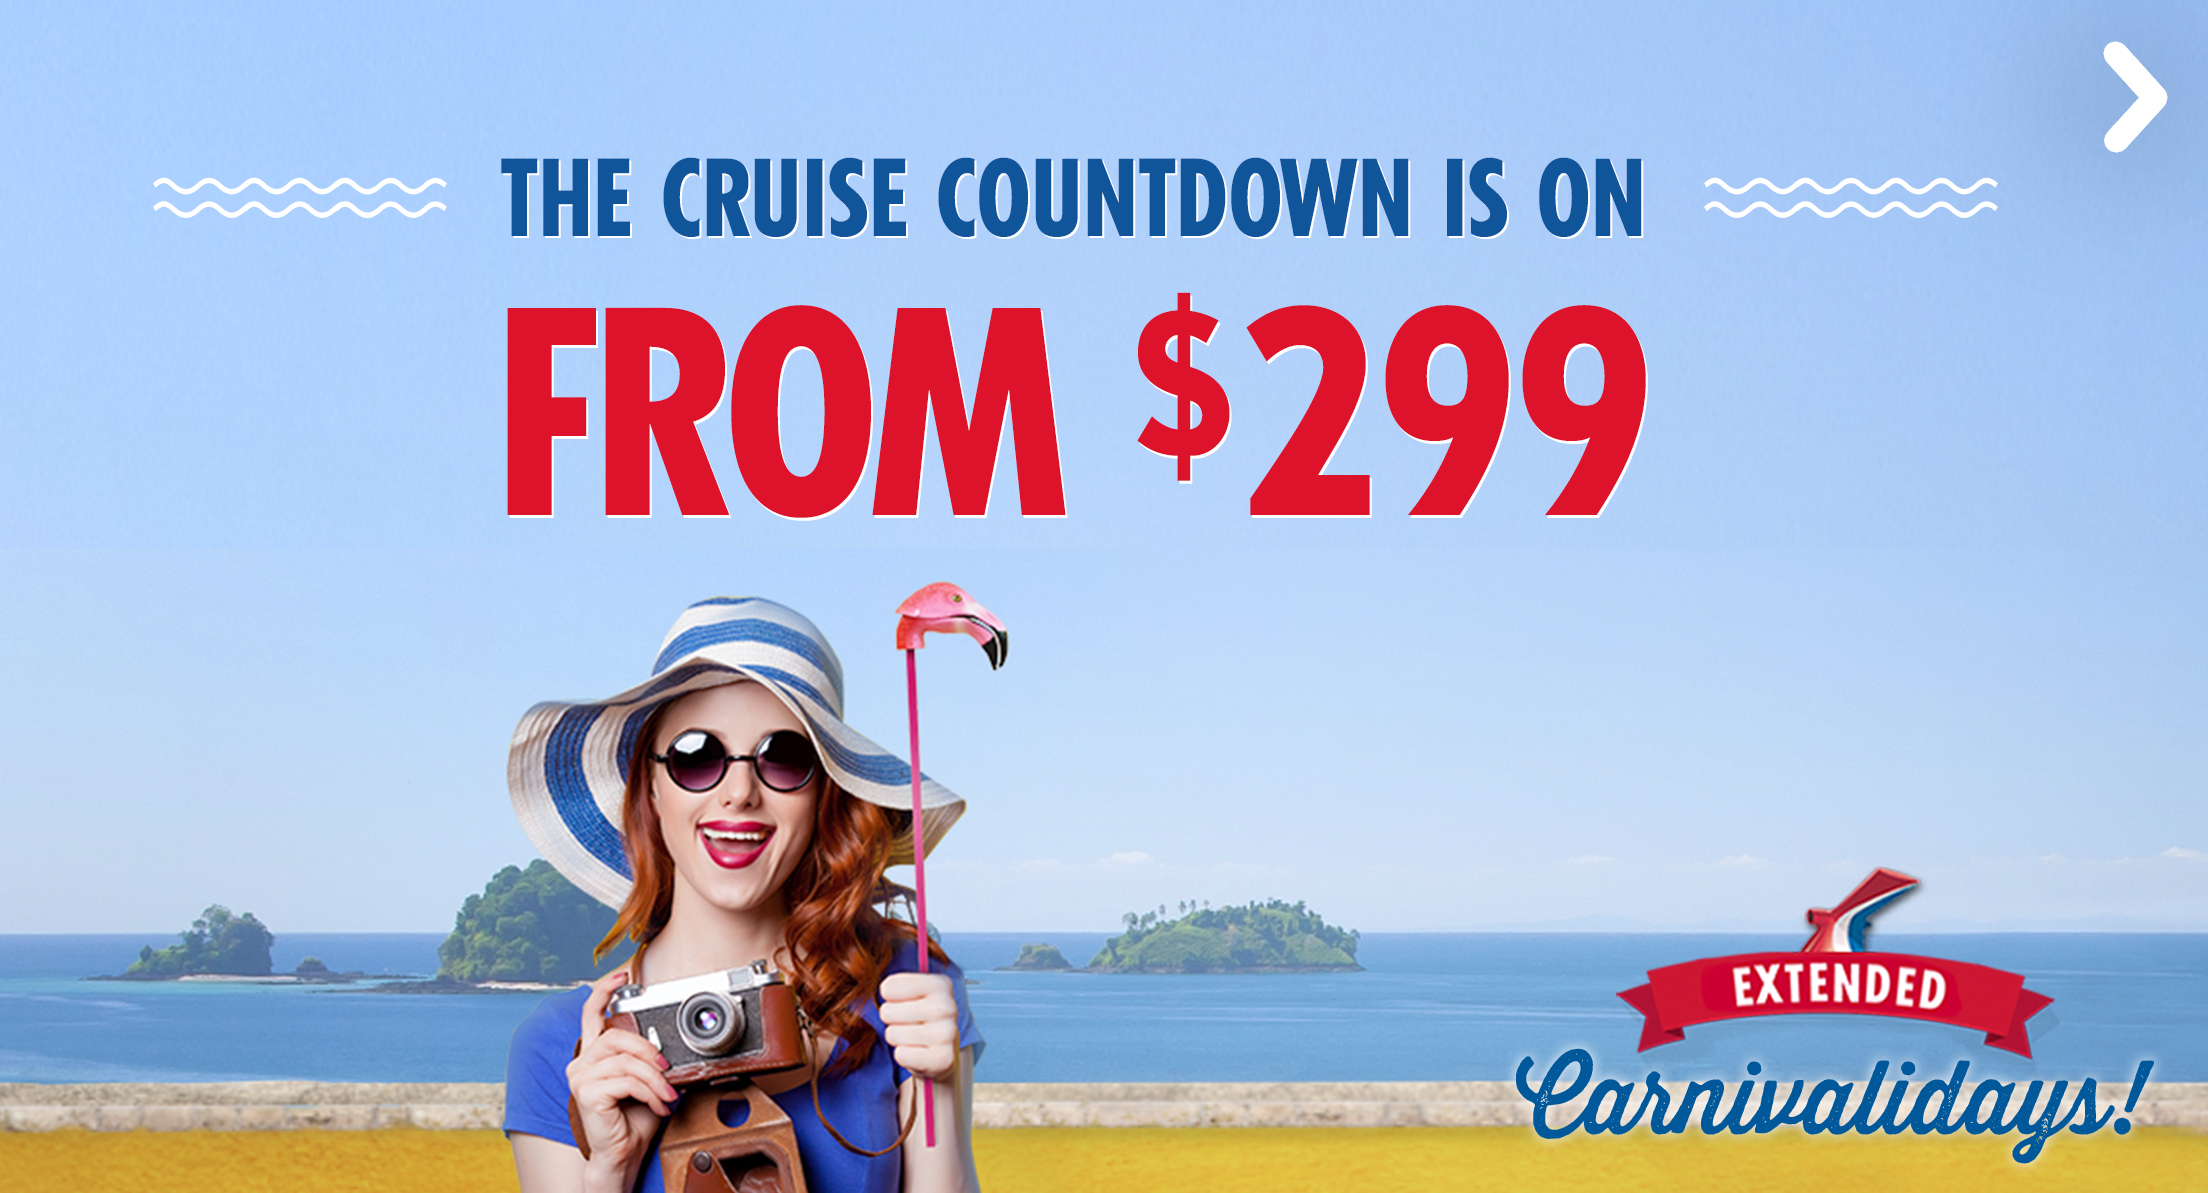 Cruises from $299 - SEE THIS DEAL